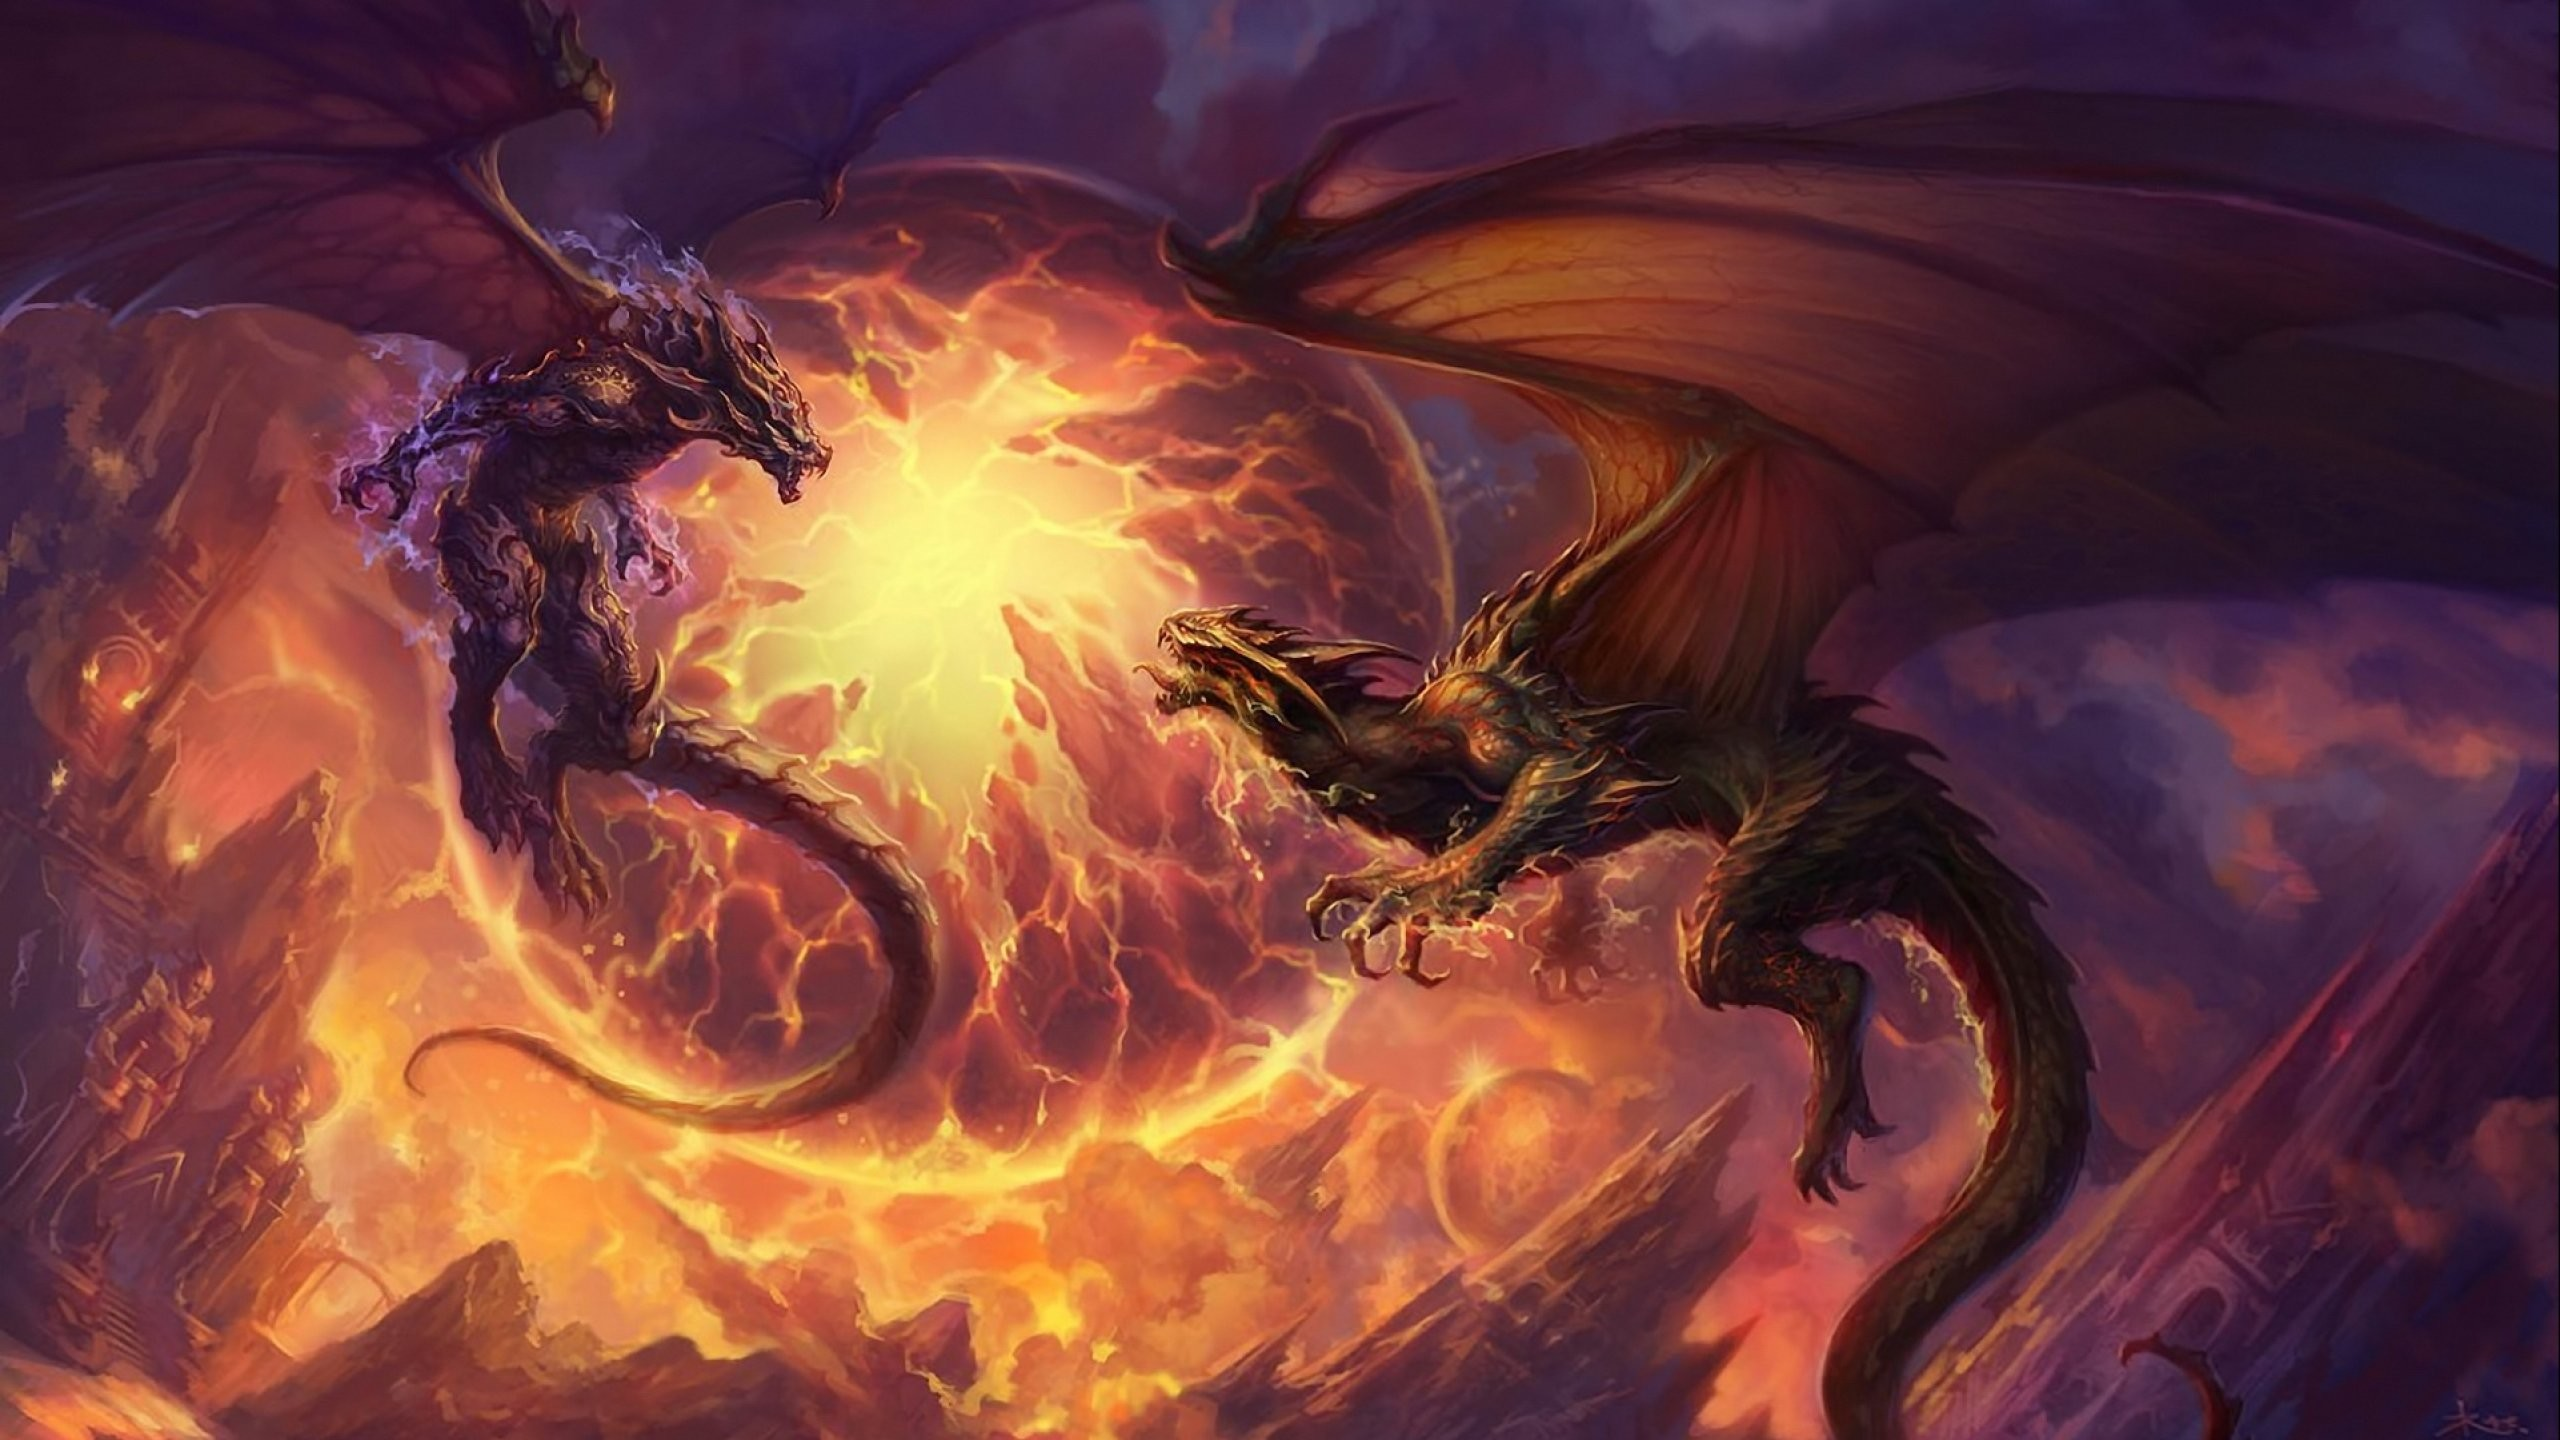 Res: 2560x1440, cool dragon wallpapers #105589